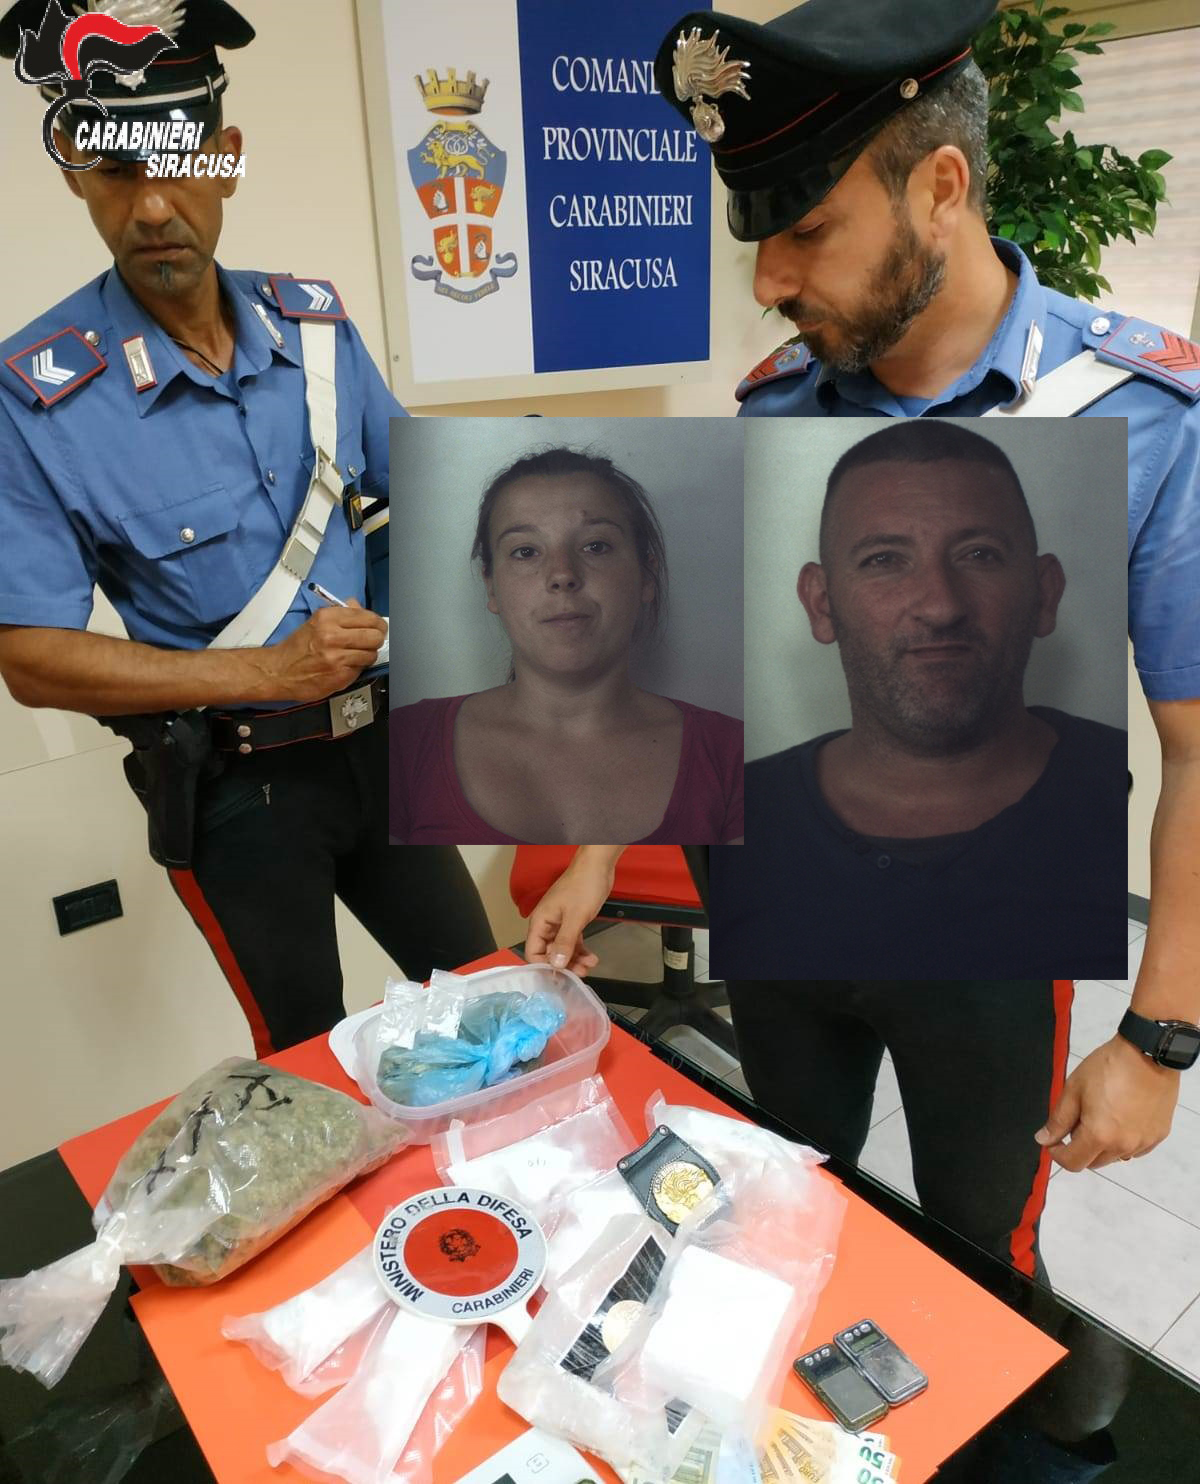 Siracusa, nascondevano un chilo di cocaina in casa: lui in cella, lei ai domiciliari